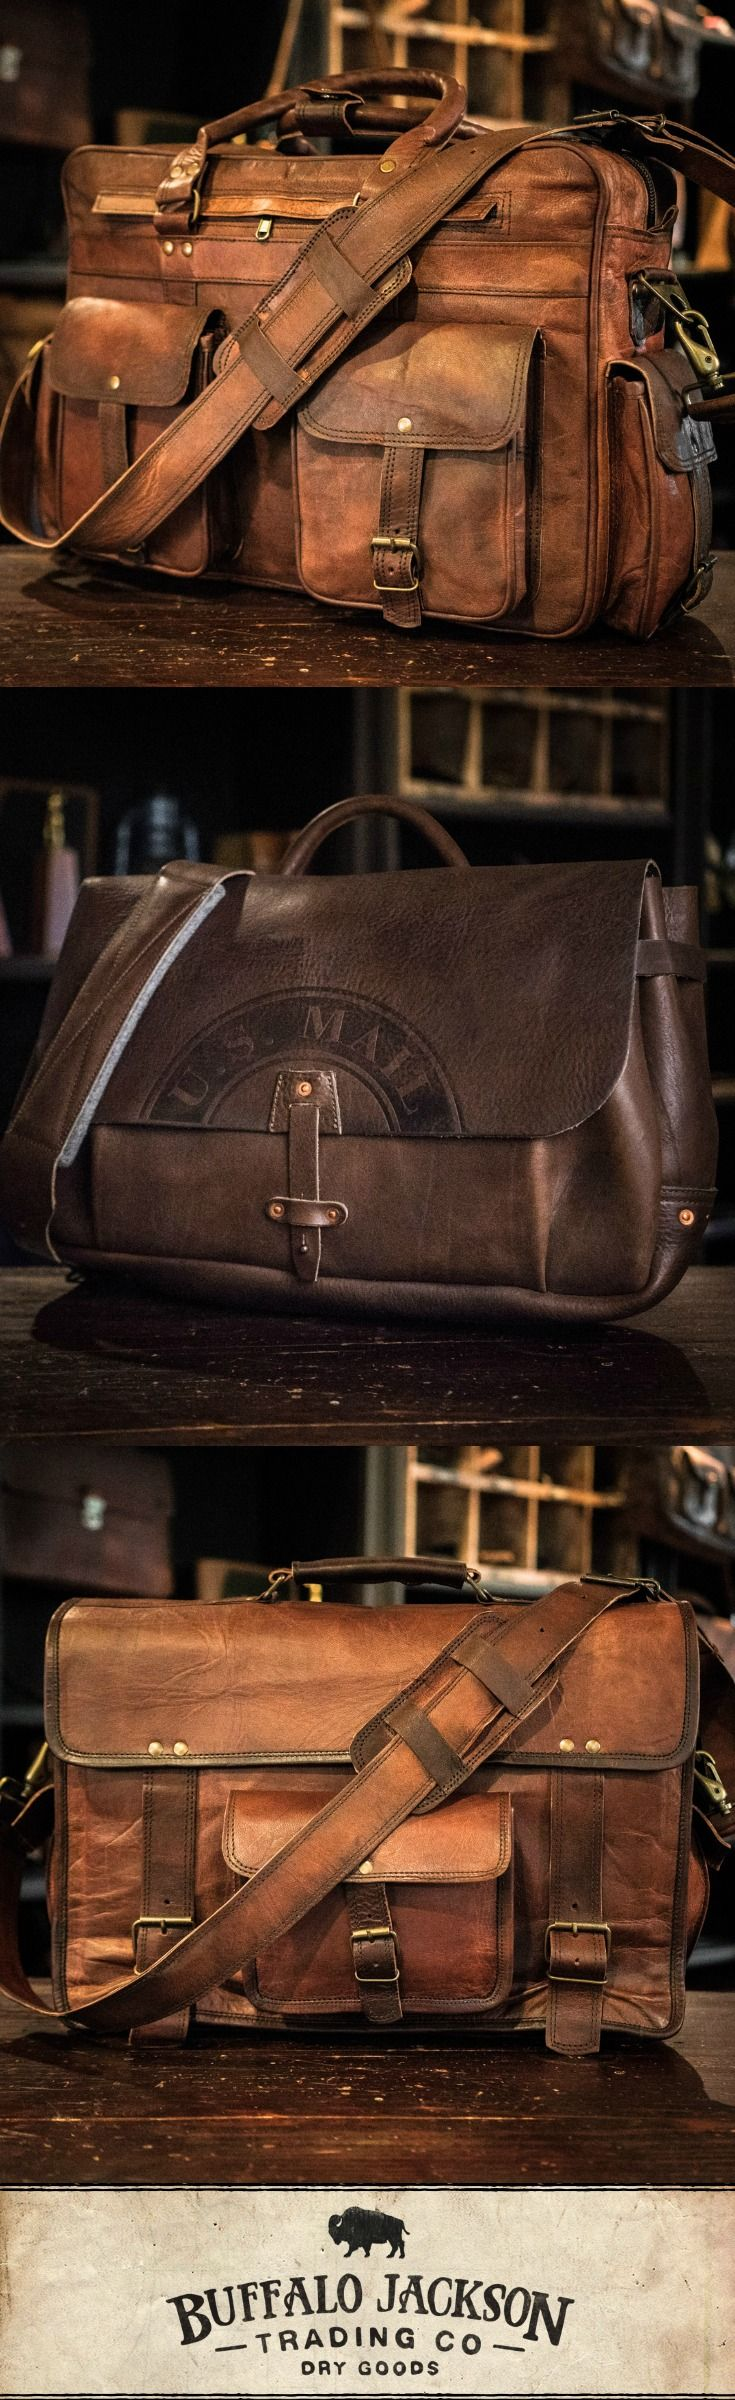 21df7008dc73a Amazing collection of leather products for men. Impressive quality and  attention to detail. Bison leather